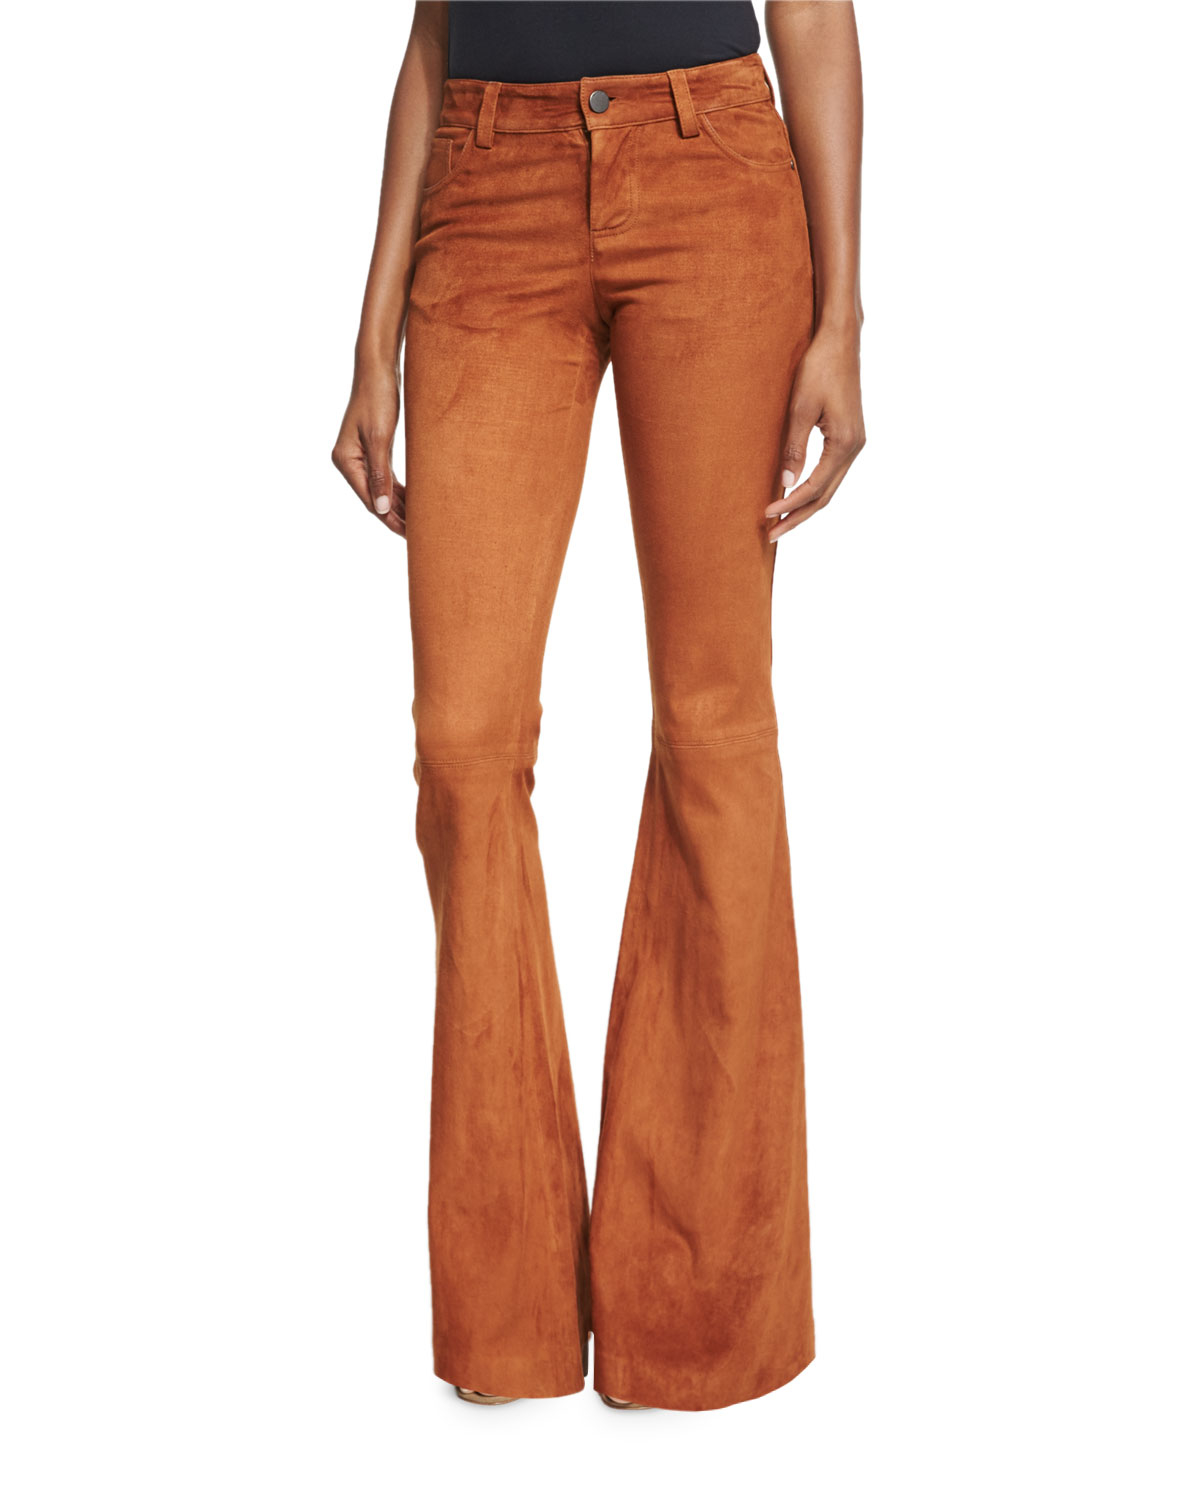 Luxury Miss Penny Dreadful Tan Colored Trousers